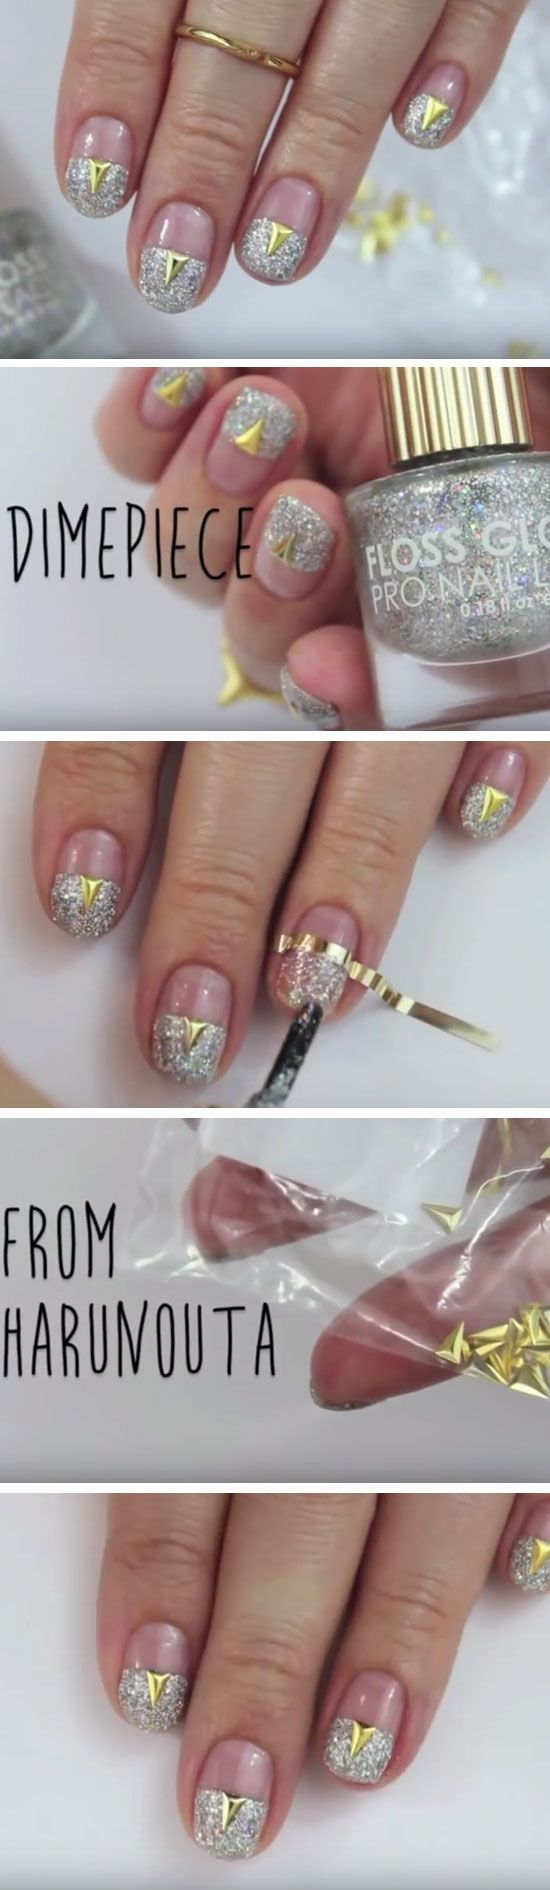 54 best Nail bling images on Pinterest | Nail bling, Nail scissors ...